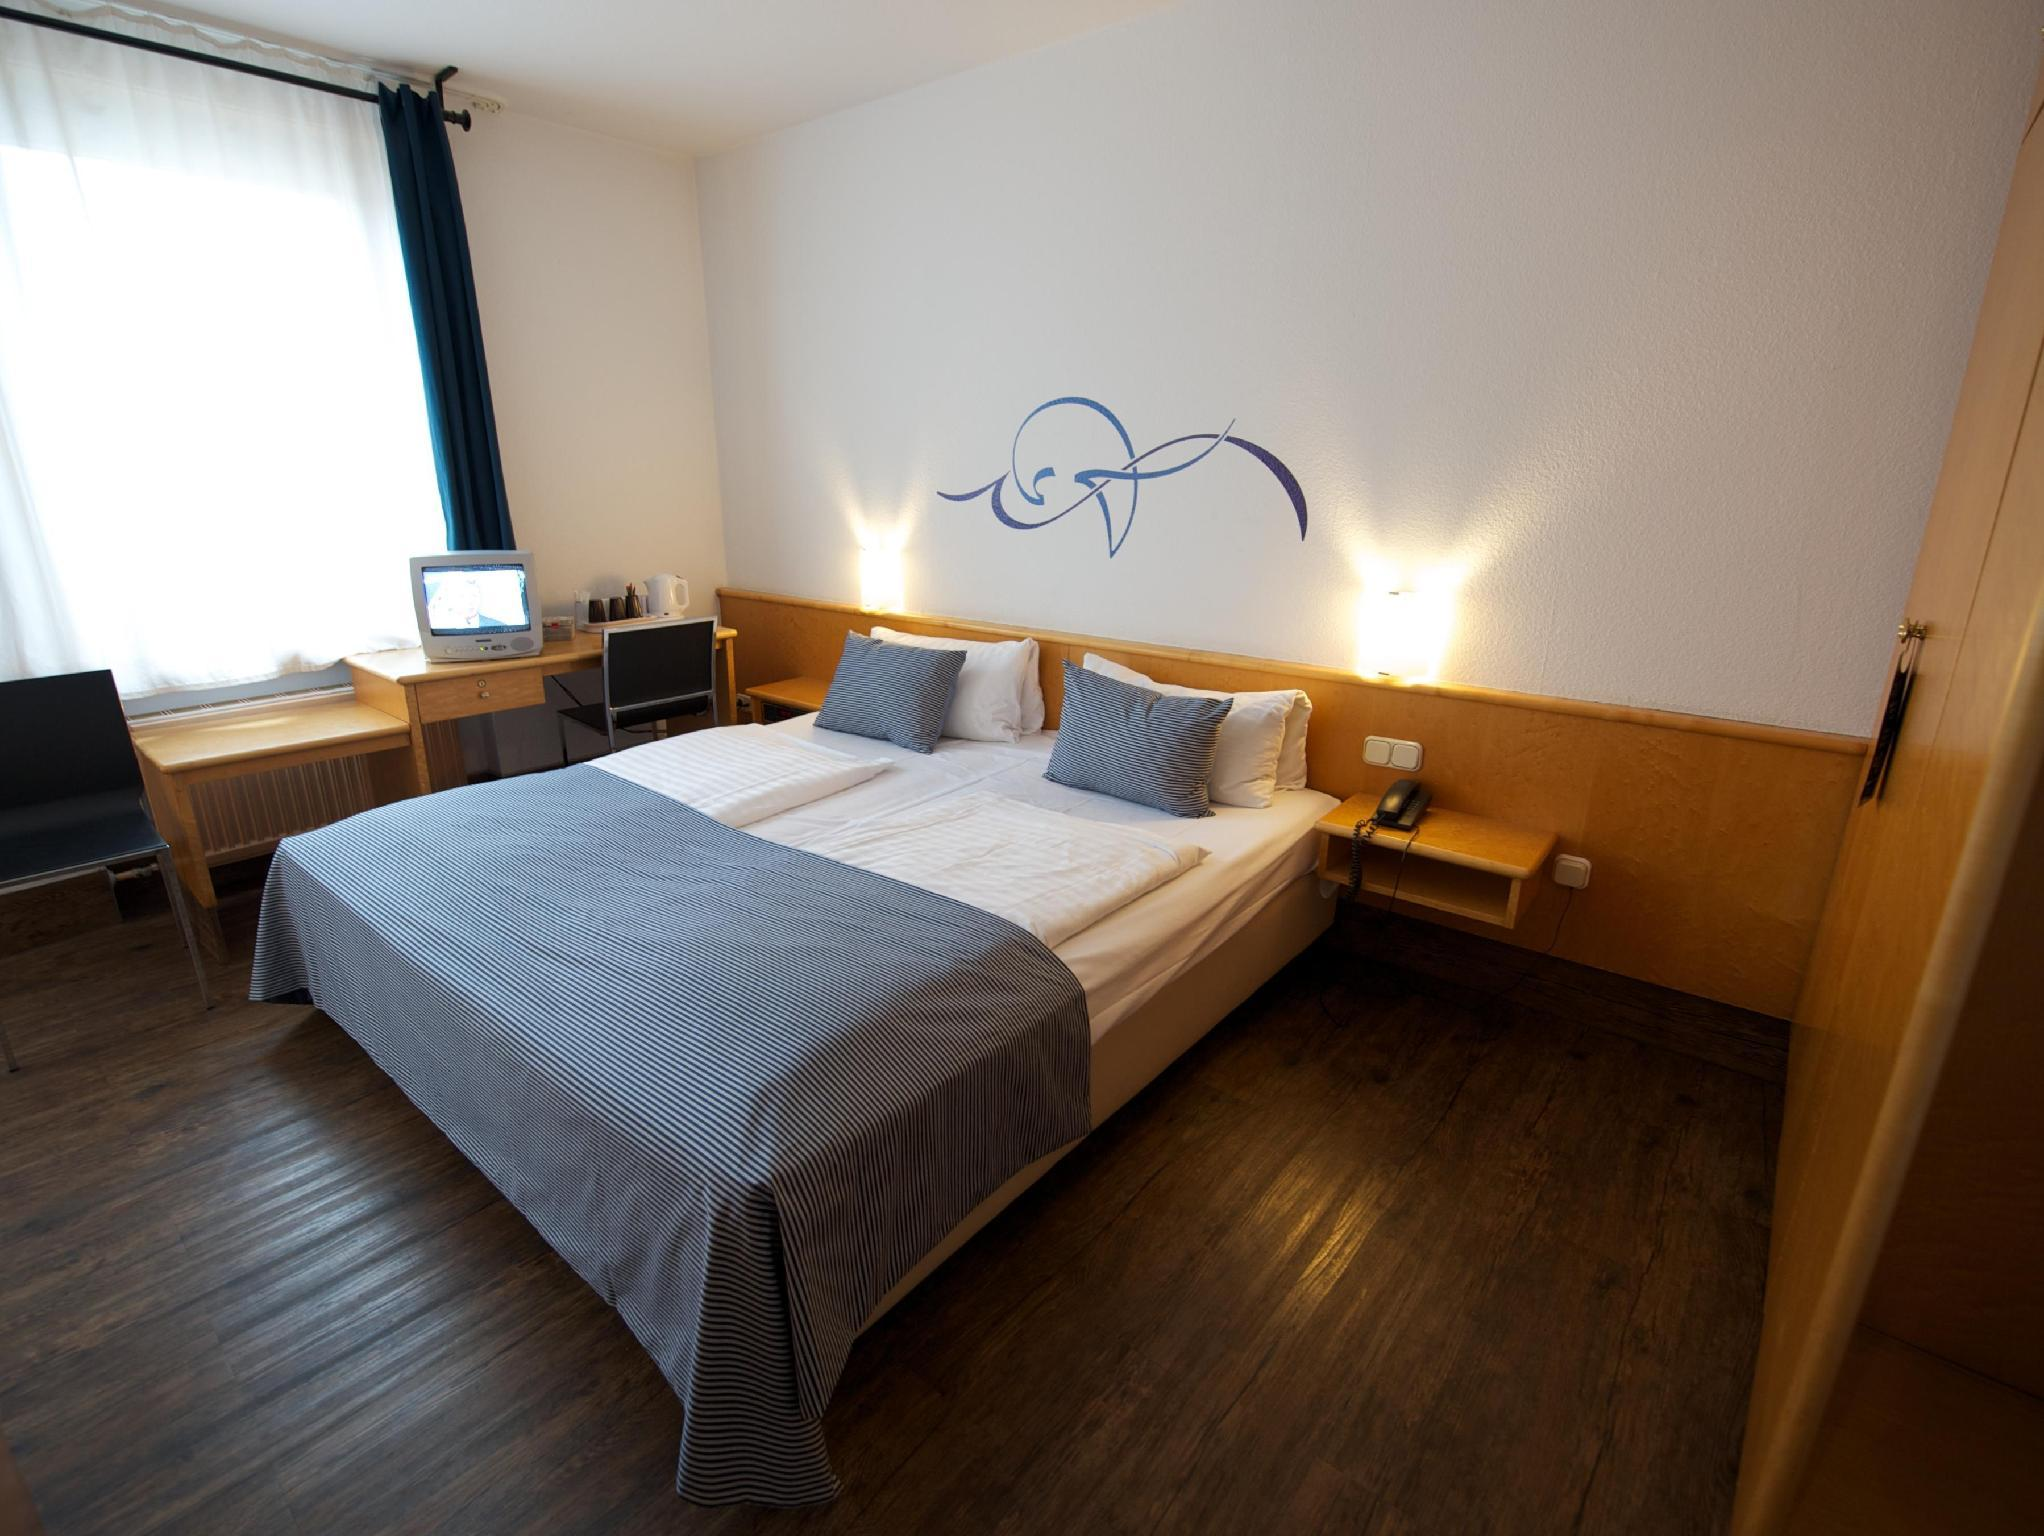 The 4You Hotel / Hostel room